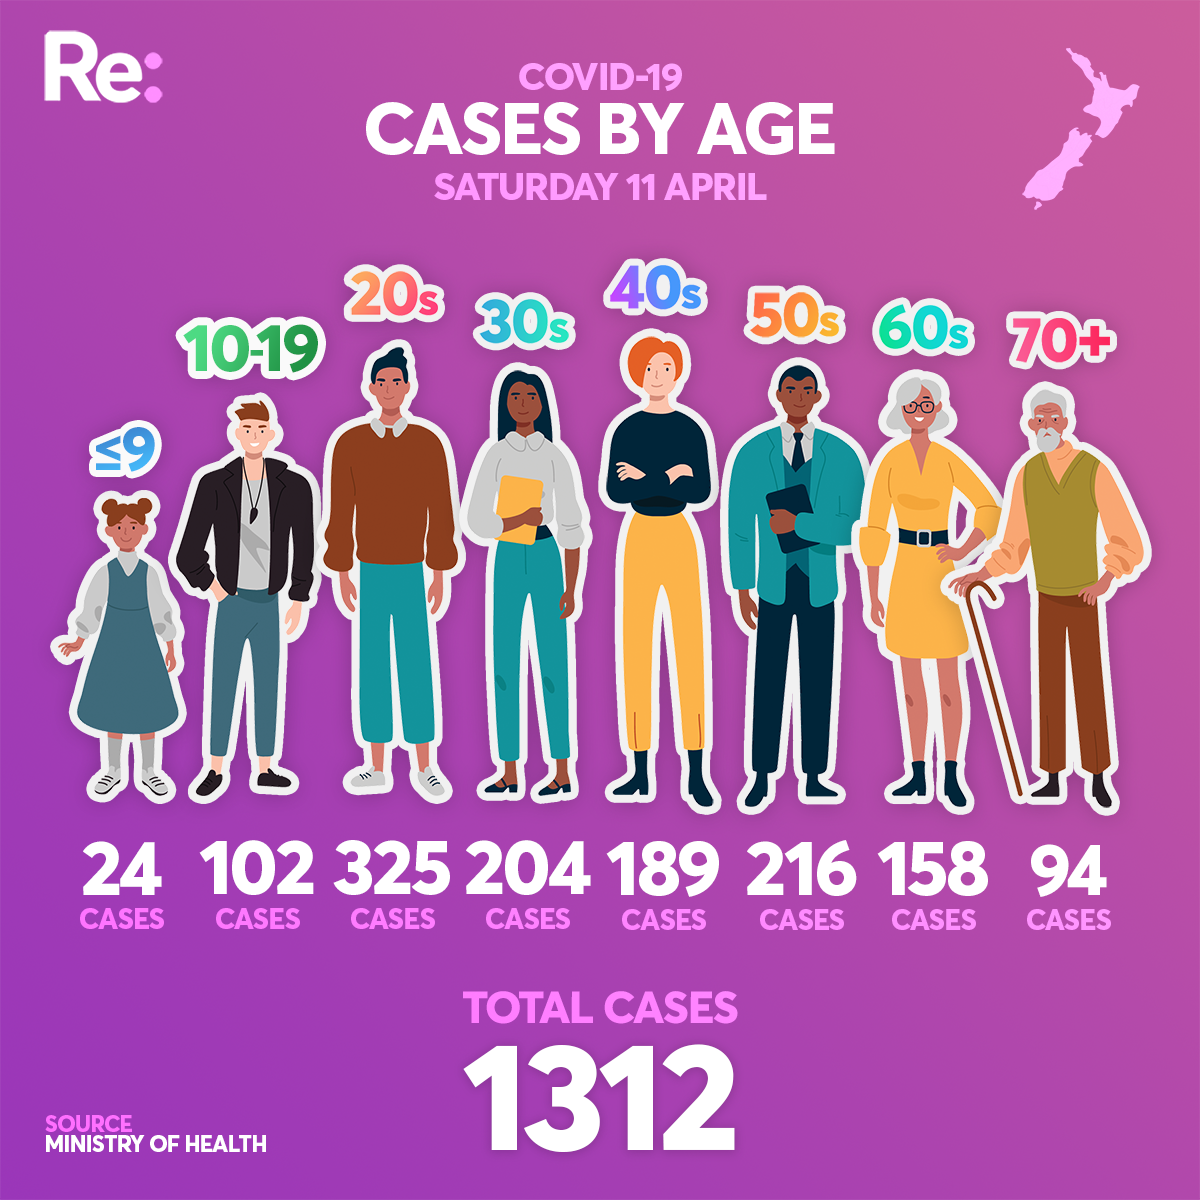 Age of cases April 11